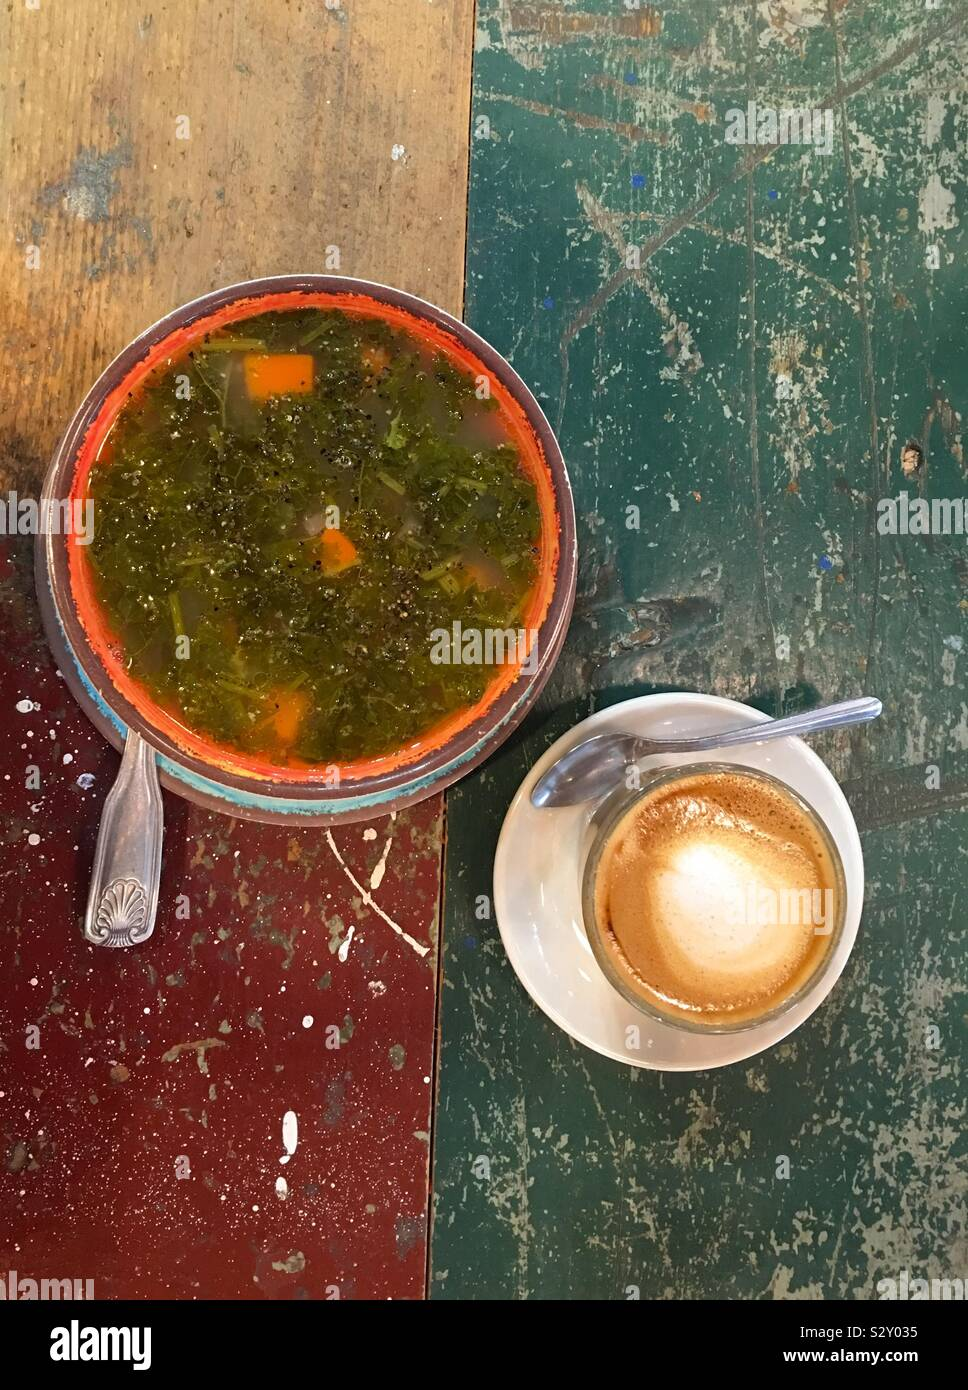 Healthy kale vegetable soup and cortado coffee that is half espresso half milk. Grunge scratch paint wood table flat lay. Stock Photo